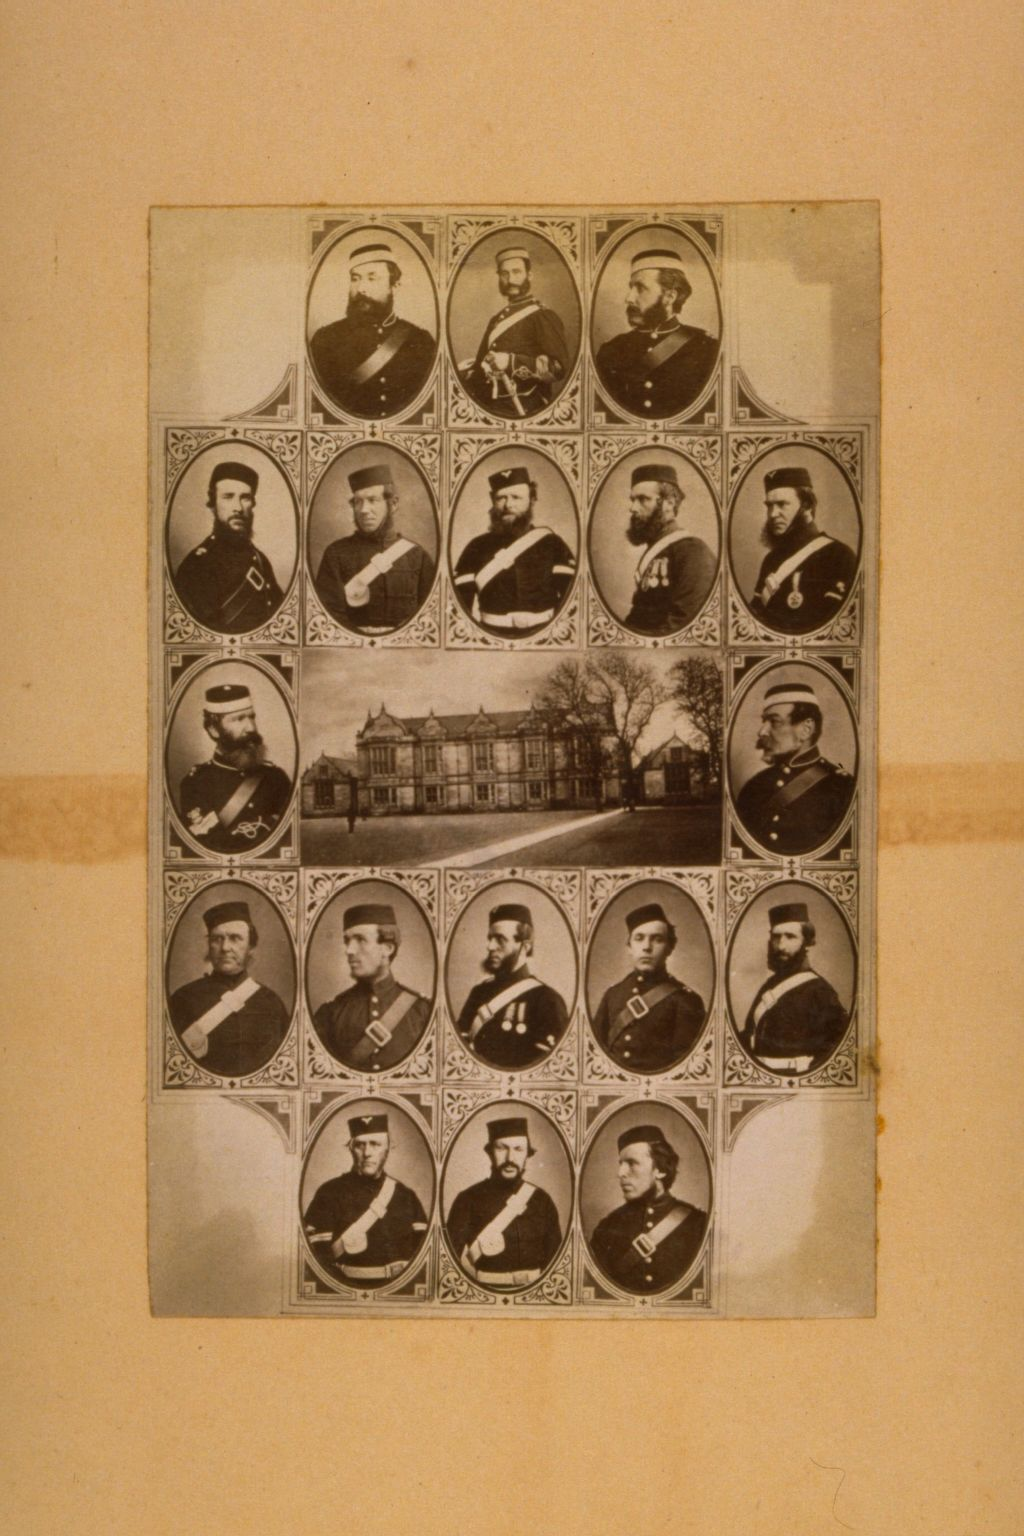 Madras College & uniformed men.